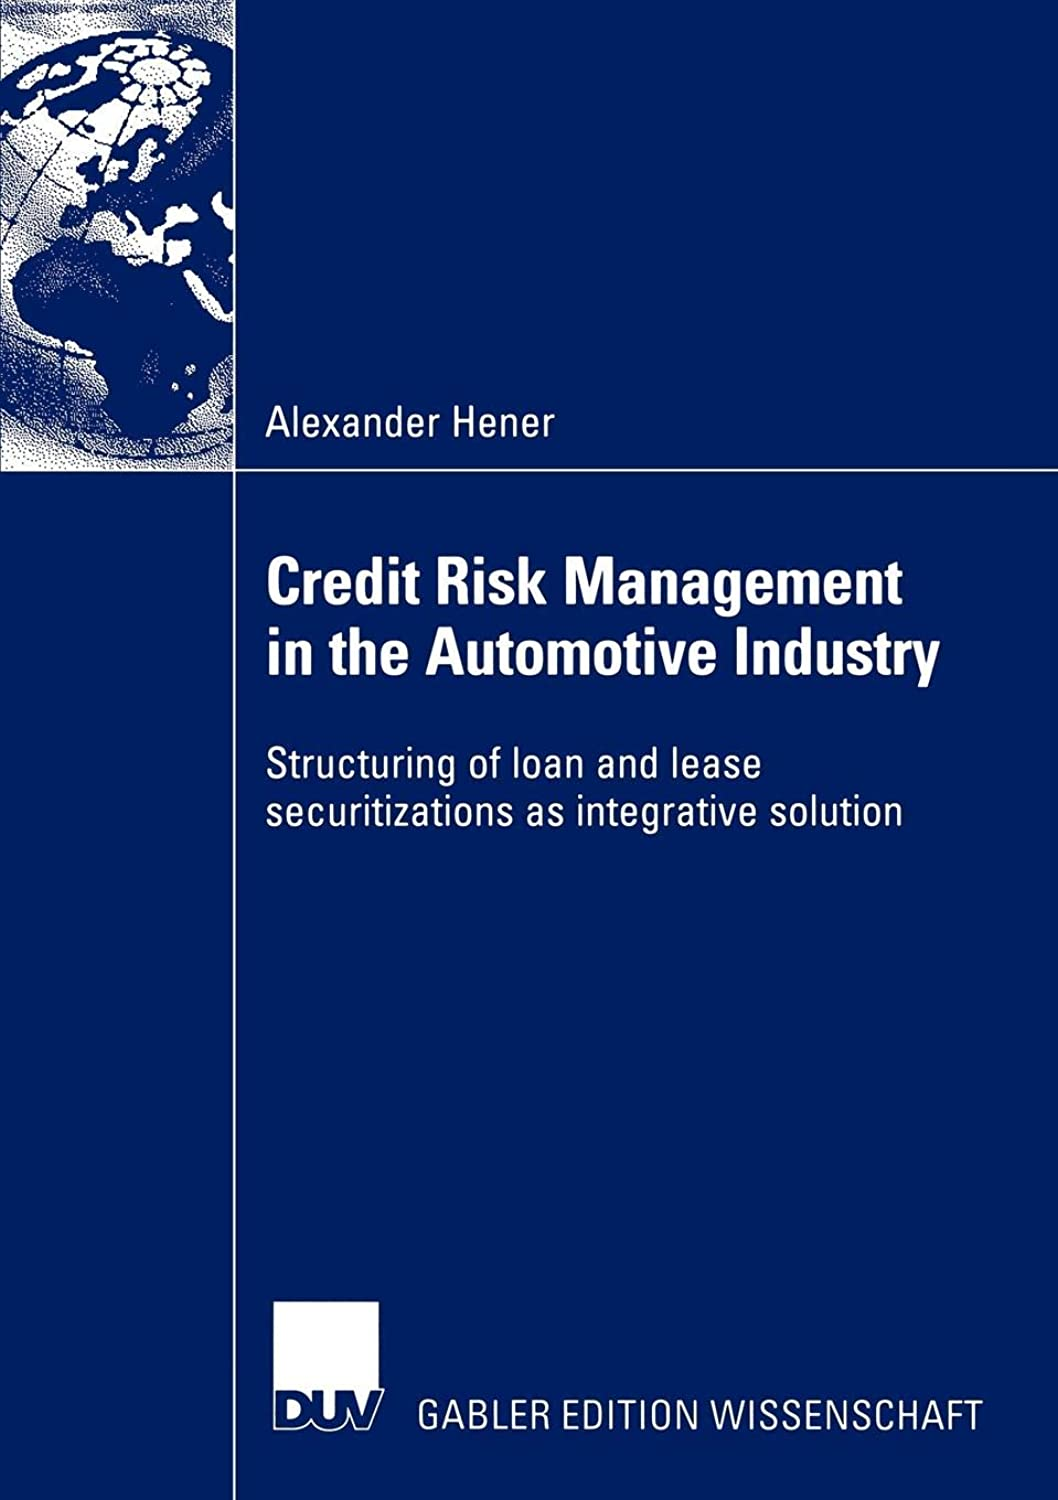 Credit Risk Management in the Automotive Industry: Structuring of loan and lease securitizations as integrative solution